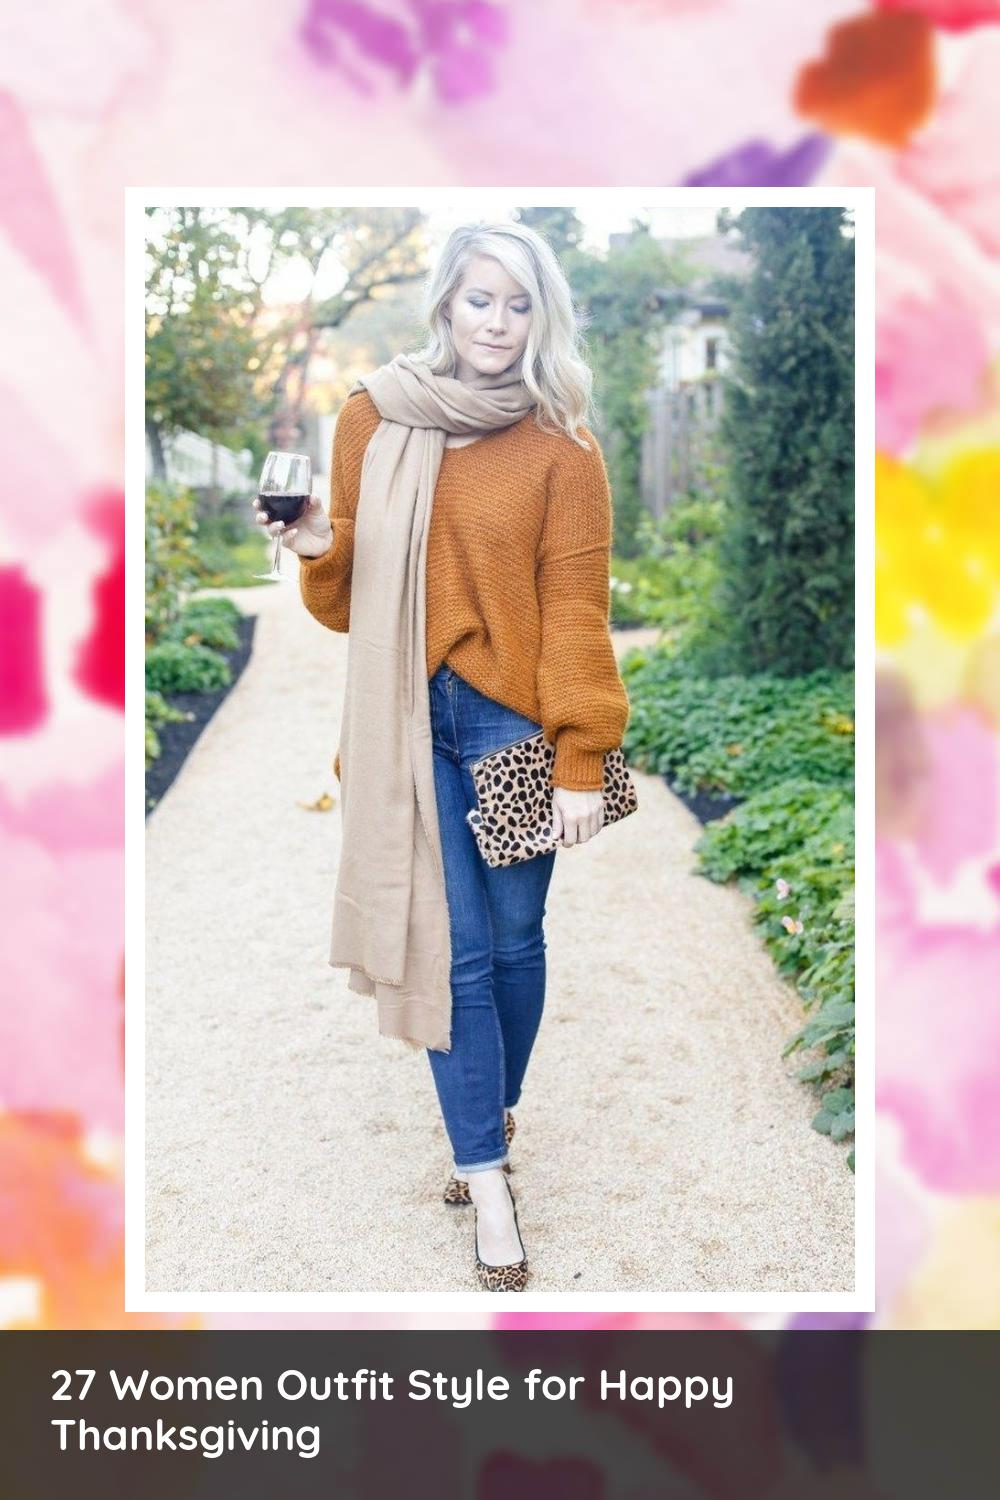 27 Women Outfit Style for Happy Thanksgiving 11